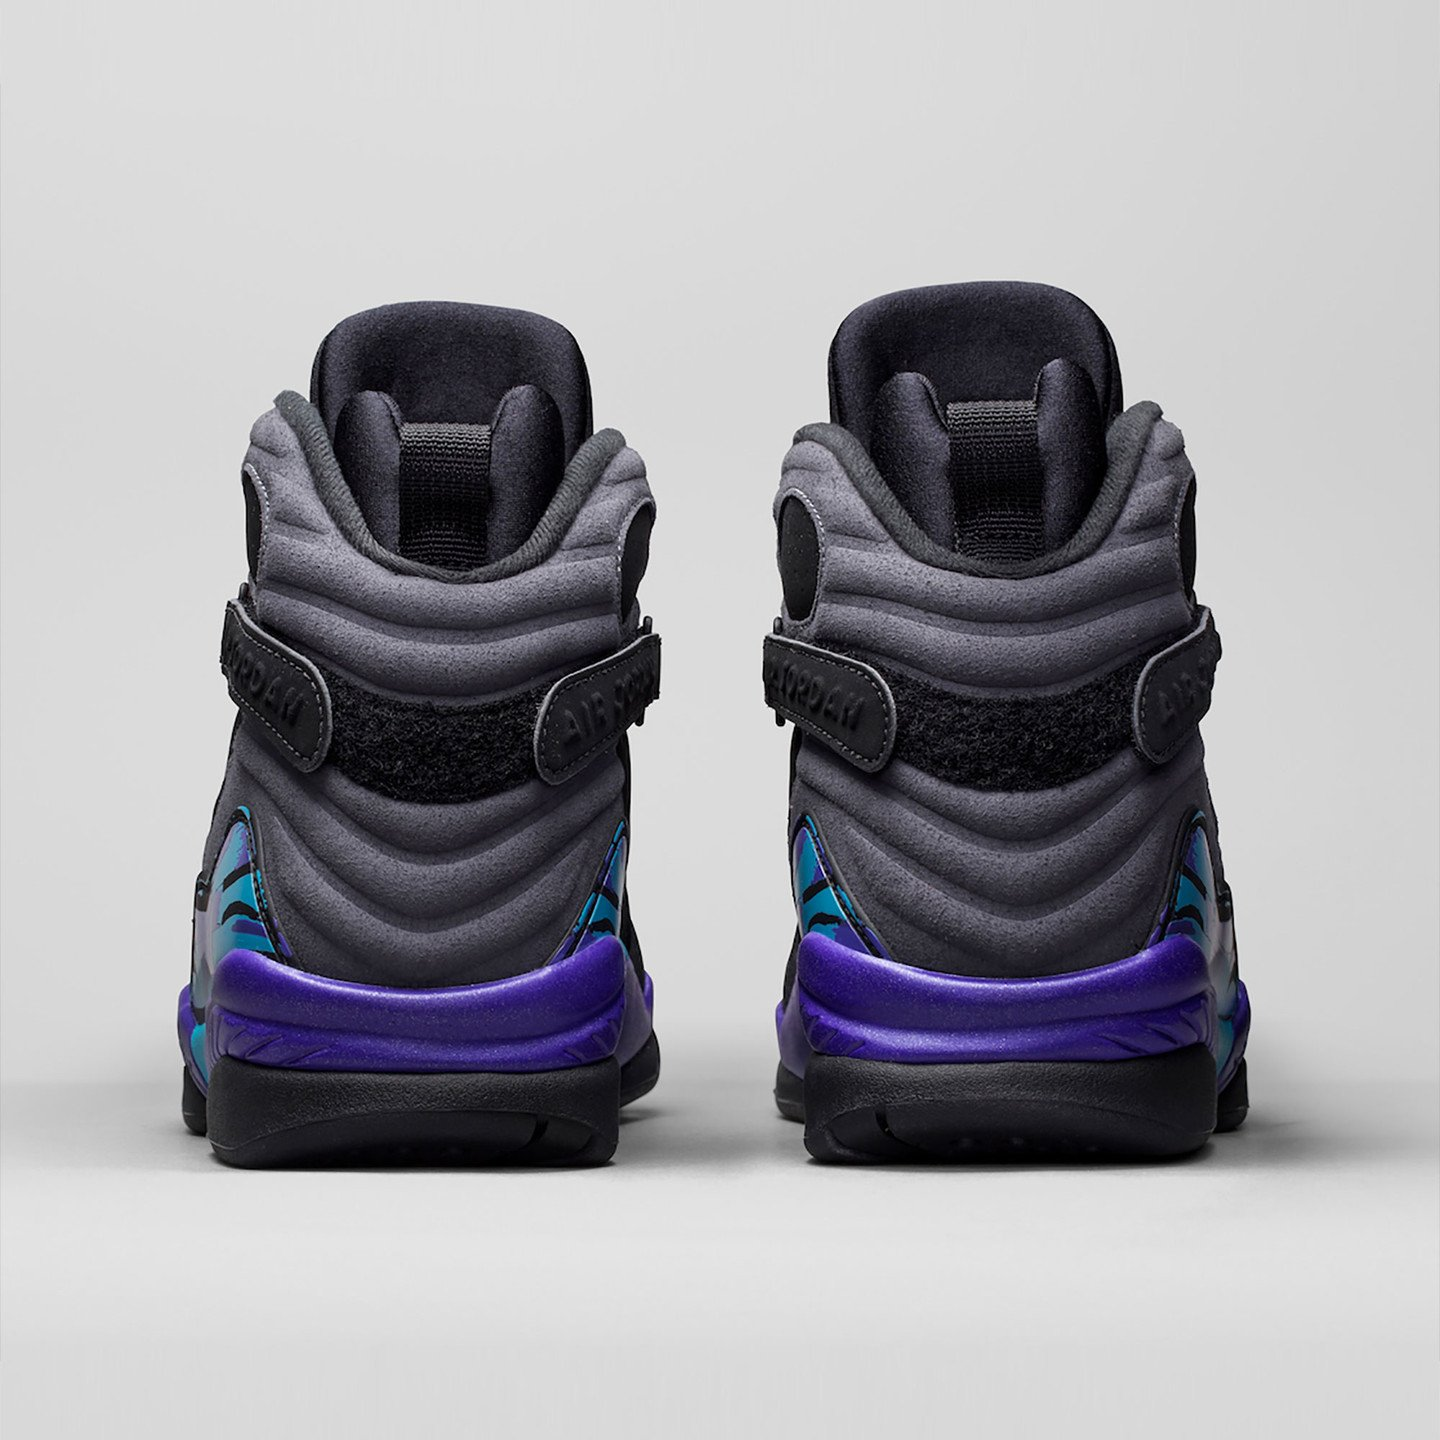 Jordan Air Jordan Retro 8 'Aqua' Black/True Red-Flint Grey-Bright Concord 305381-025-45.5